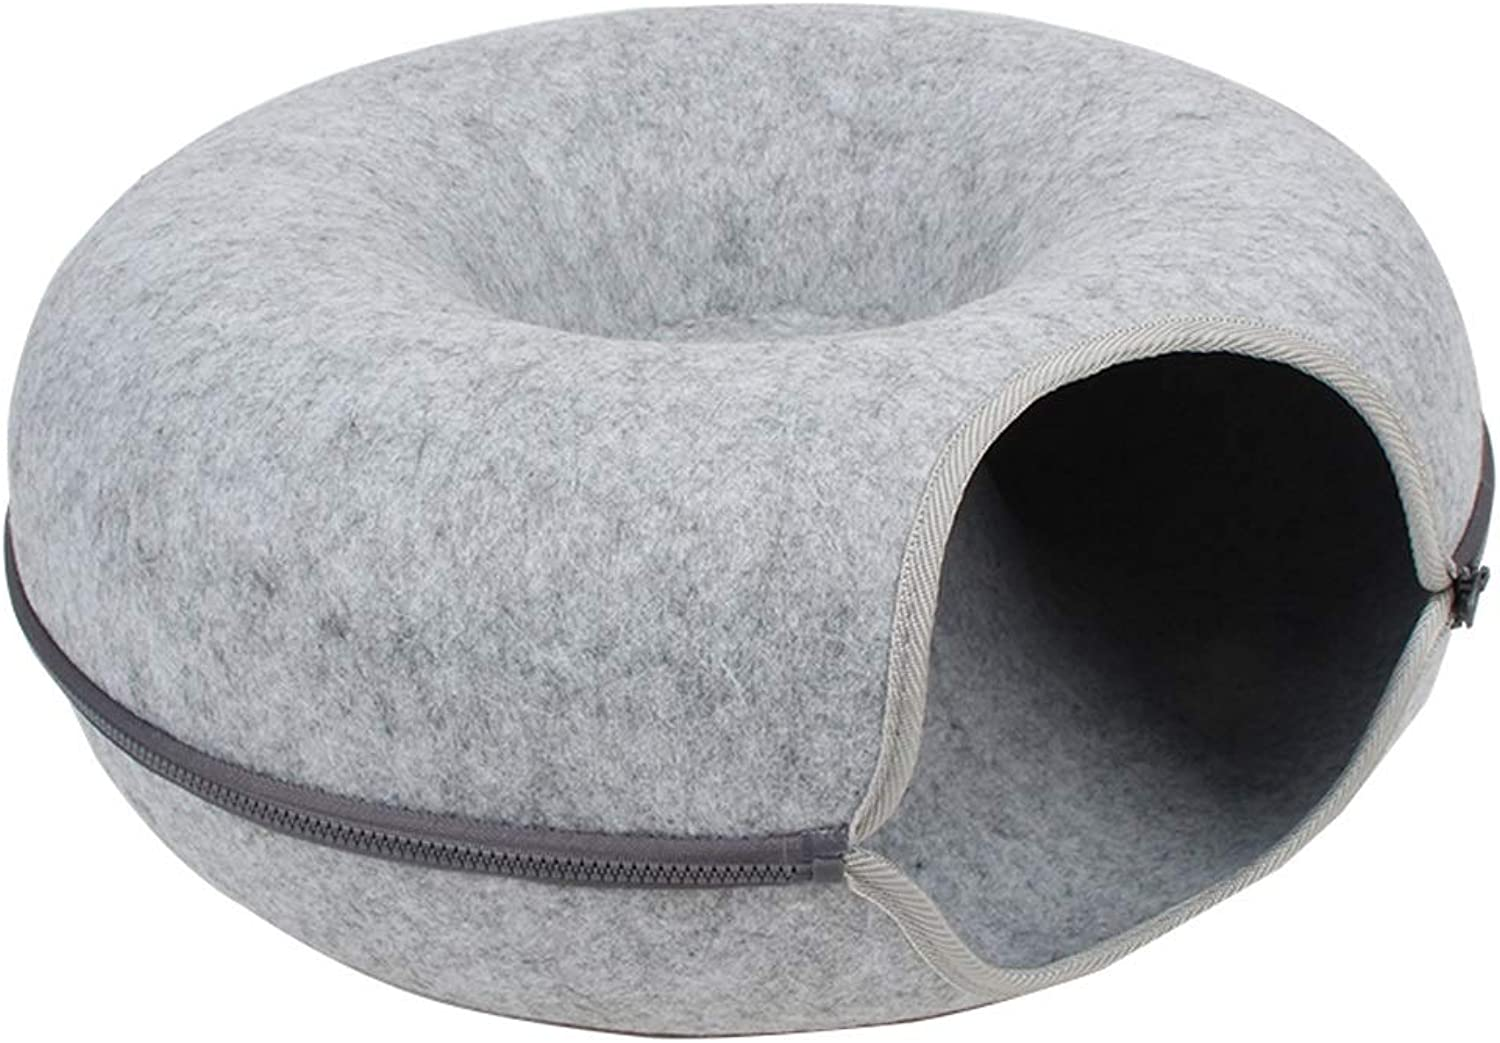 LFpet supplies Pet Bed Warm Dog House Cat Litter Four Seasons Universal Washable Semiclosed Pet Supplies